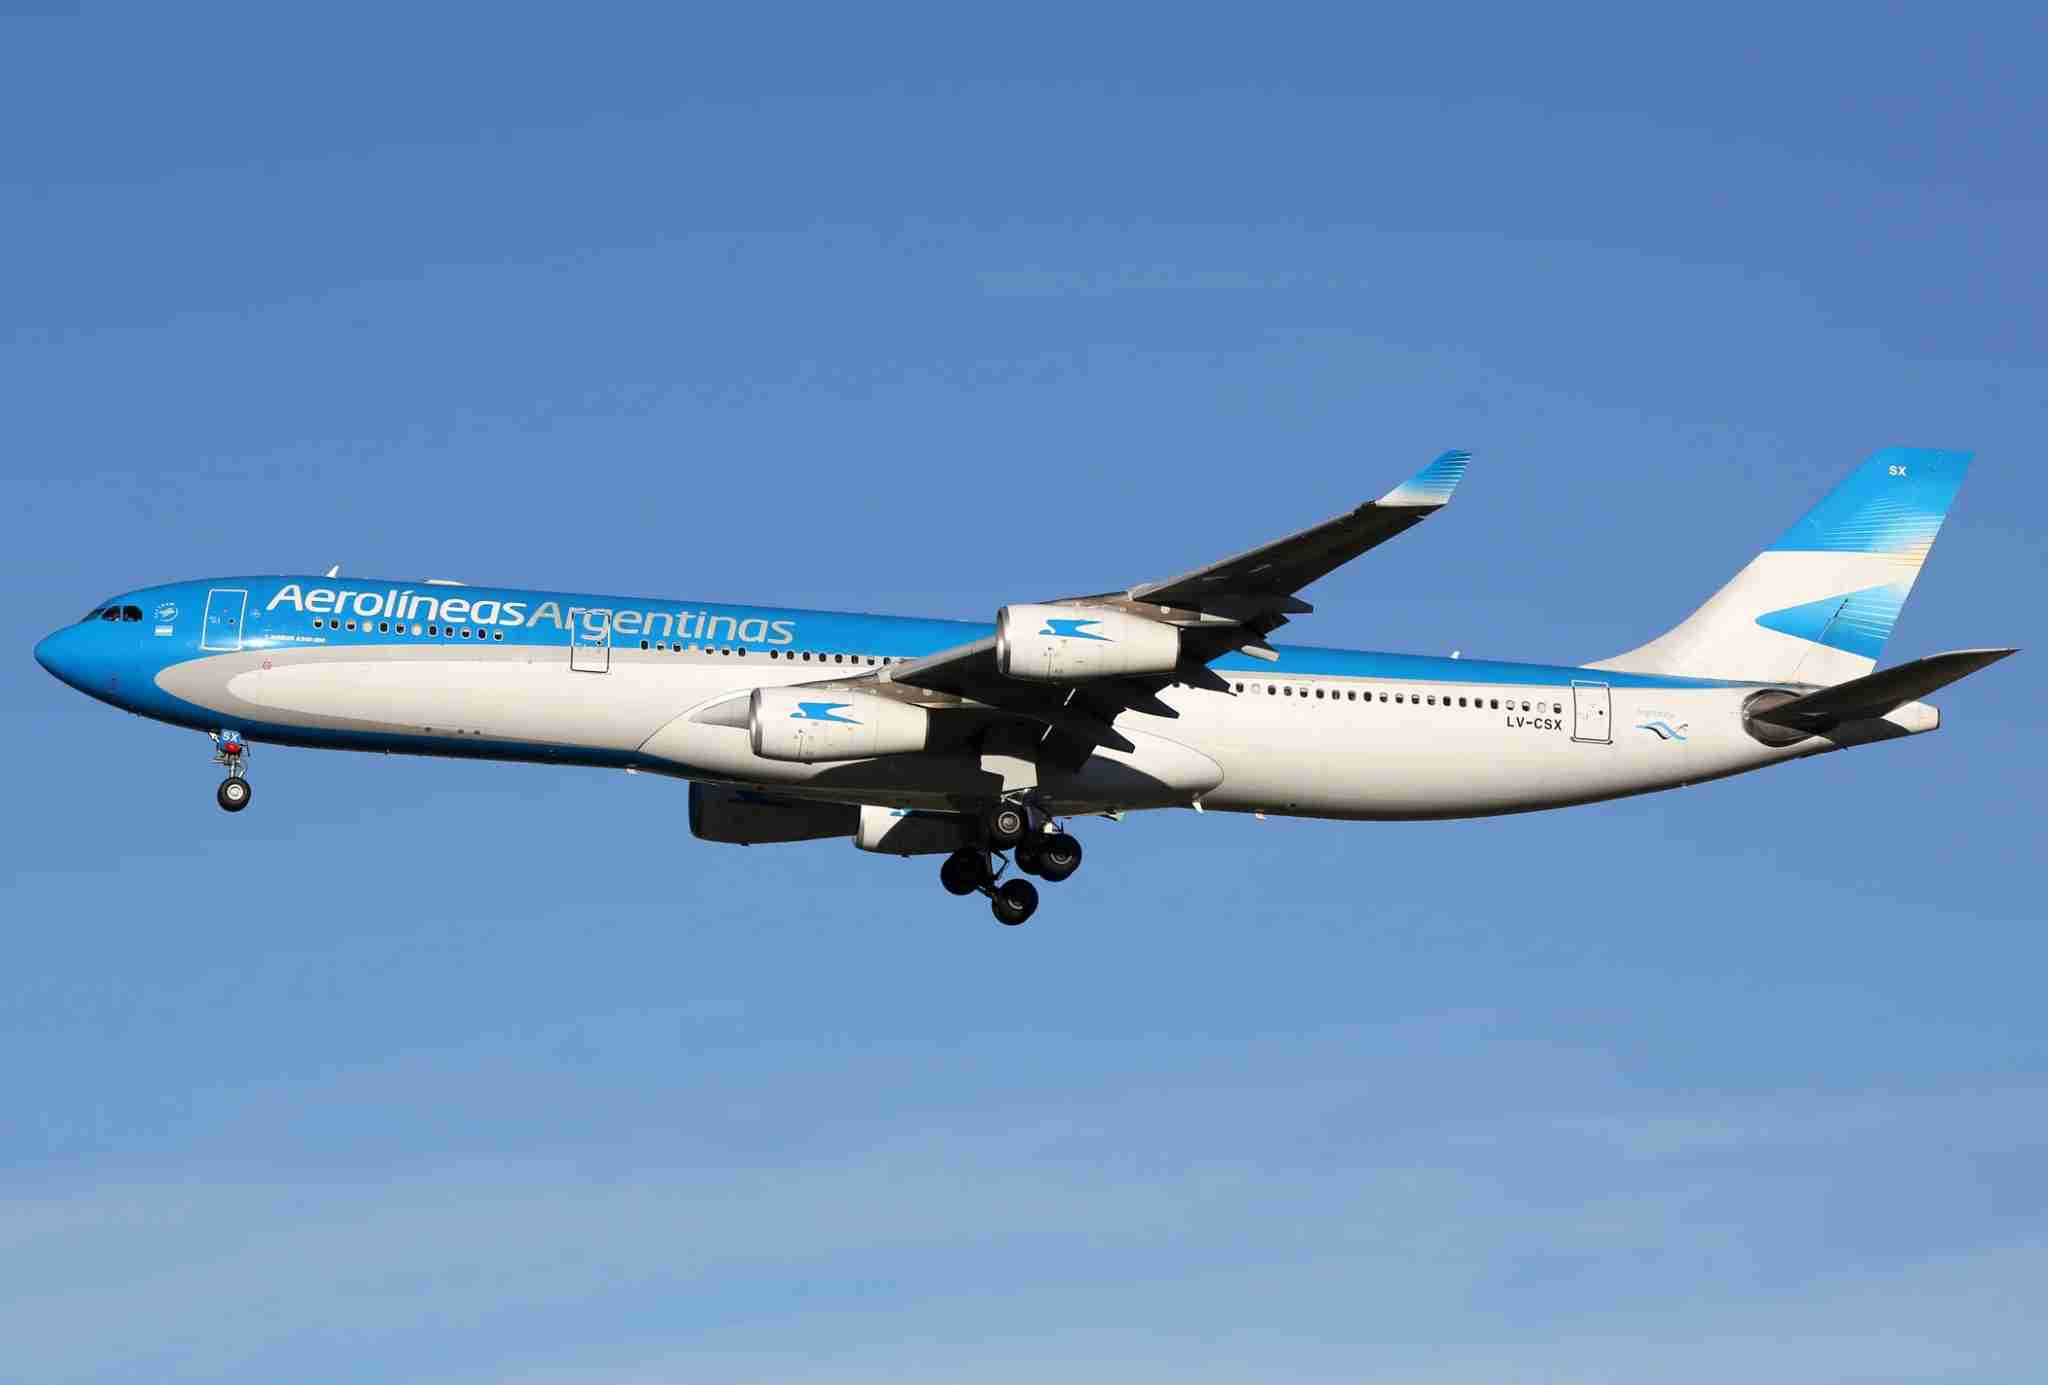 Madrid, Spain - March 5, 2015: An Aerolineas Argentinas Airbus A340 with the registration LV-CSX landing at Madrid Airport (MAD). Aerolineas Argentinas is the Argentinian flag carrier airline with its headquarters in Buenos Aires.